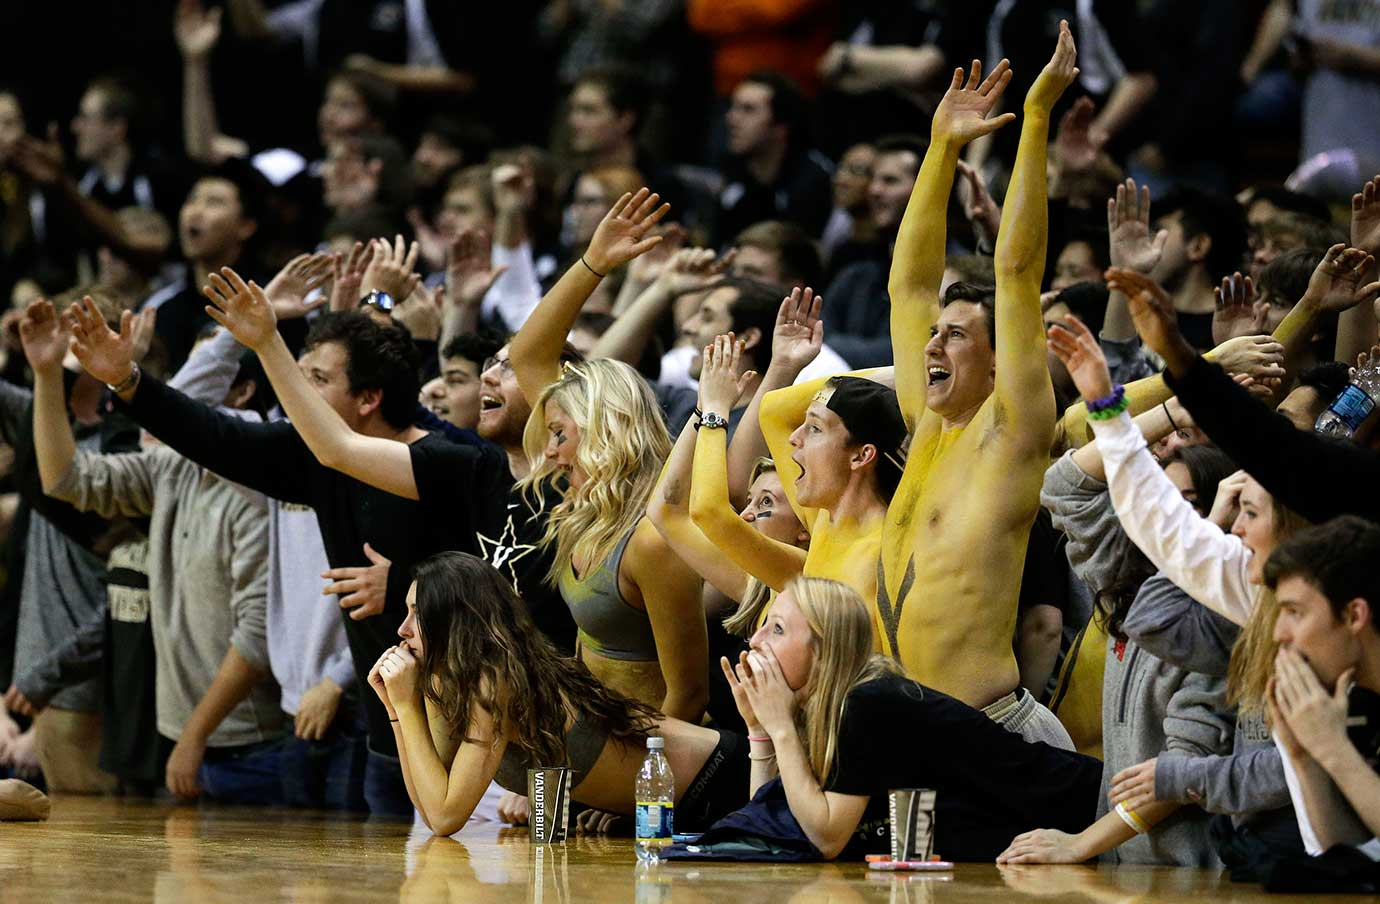 Vanderbilt fans cheer during their school's game against Florida in Nashville. Vanderbilt  won 60-59.